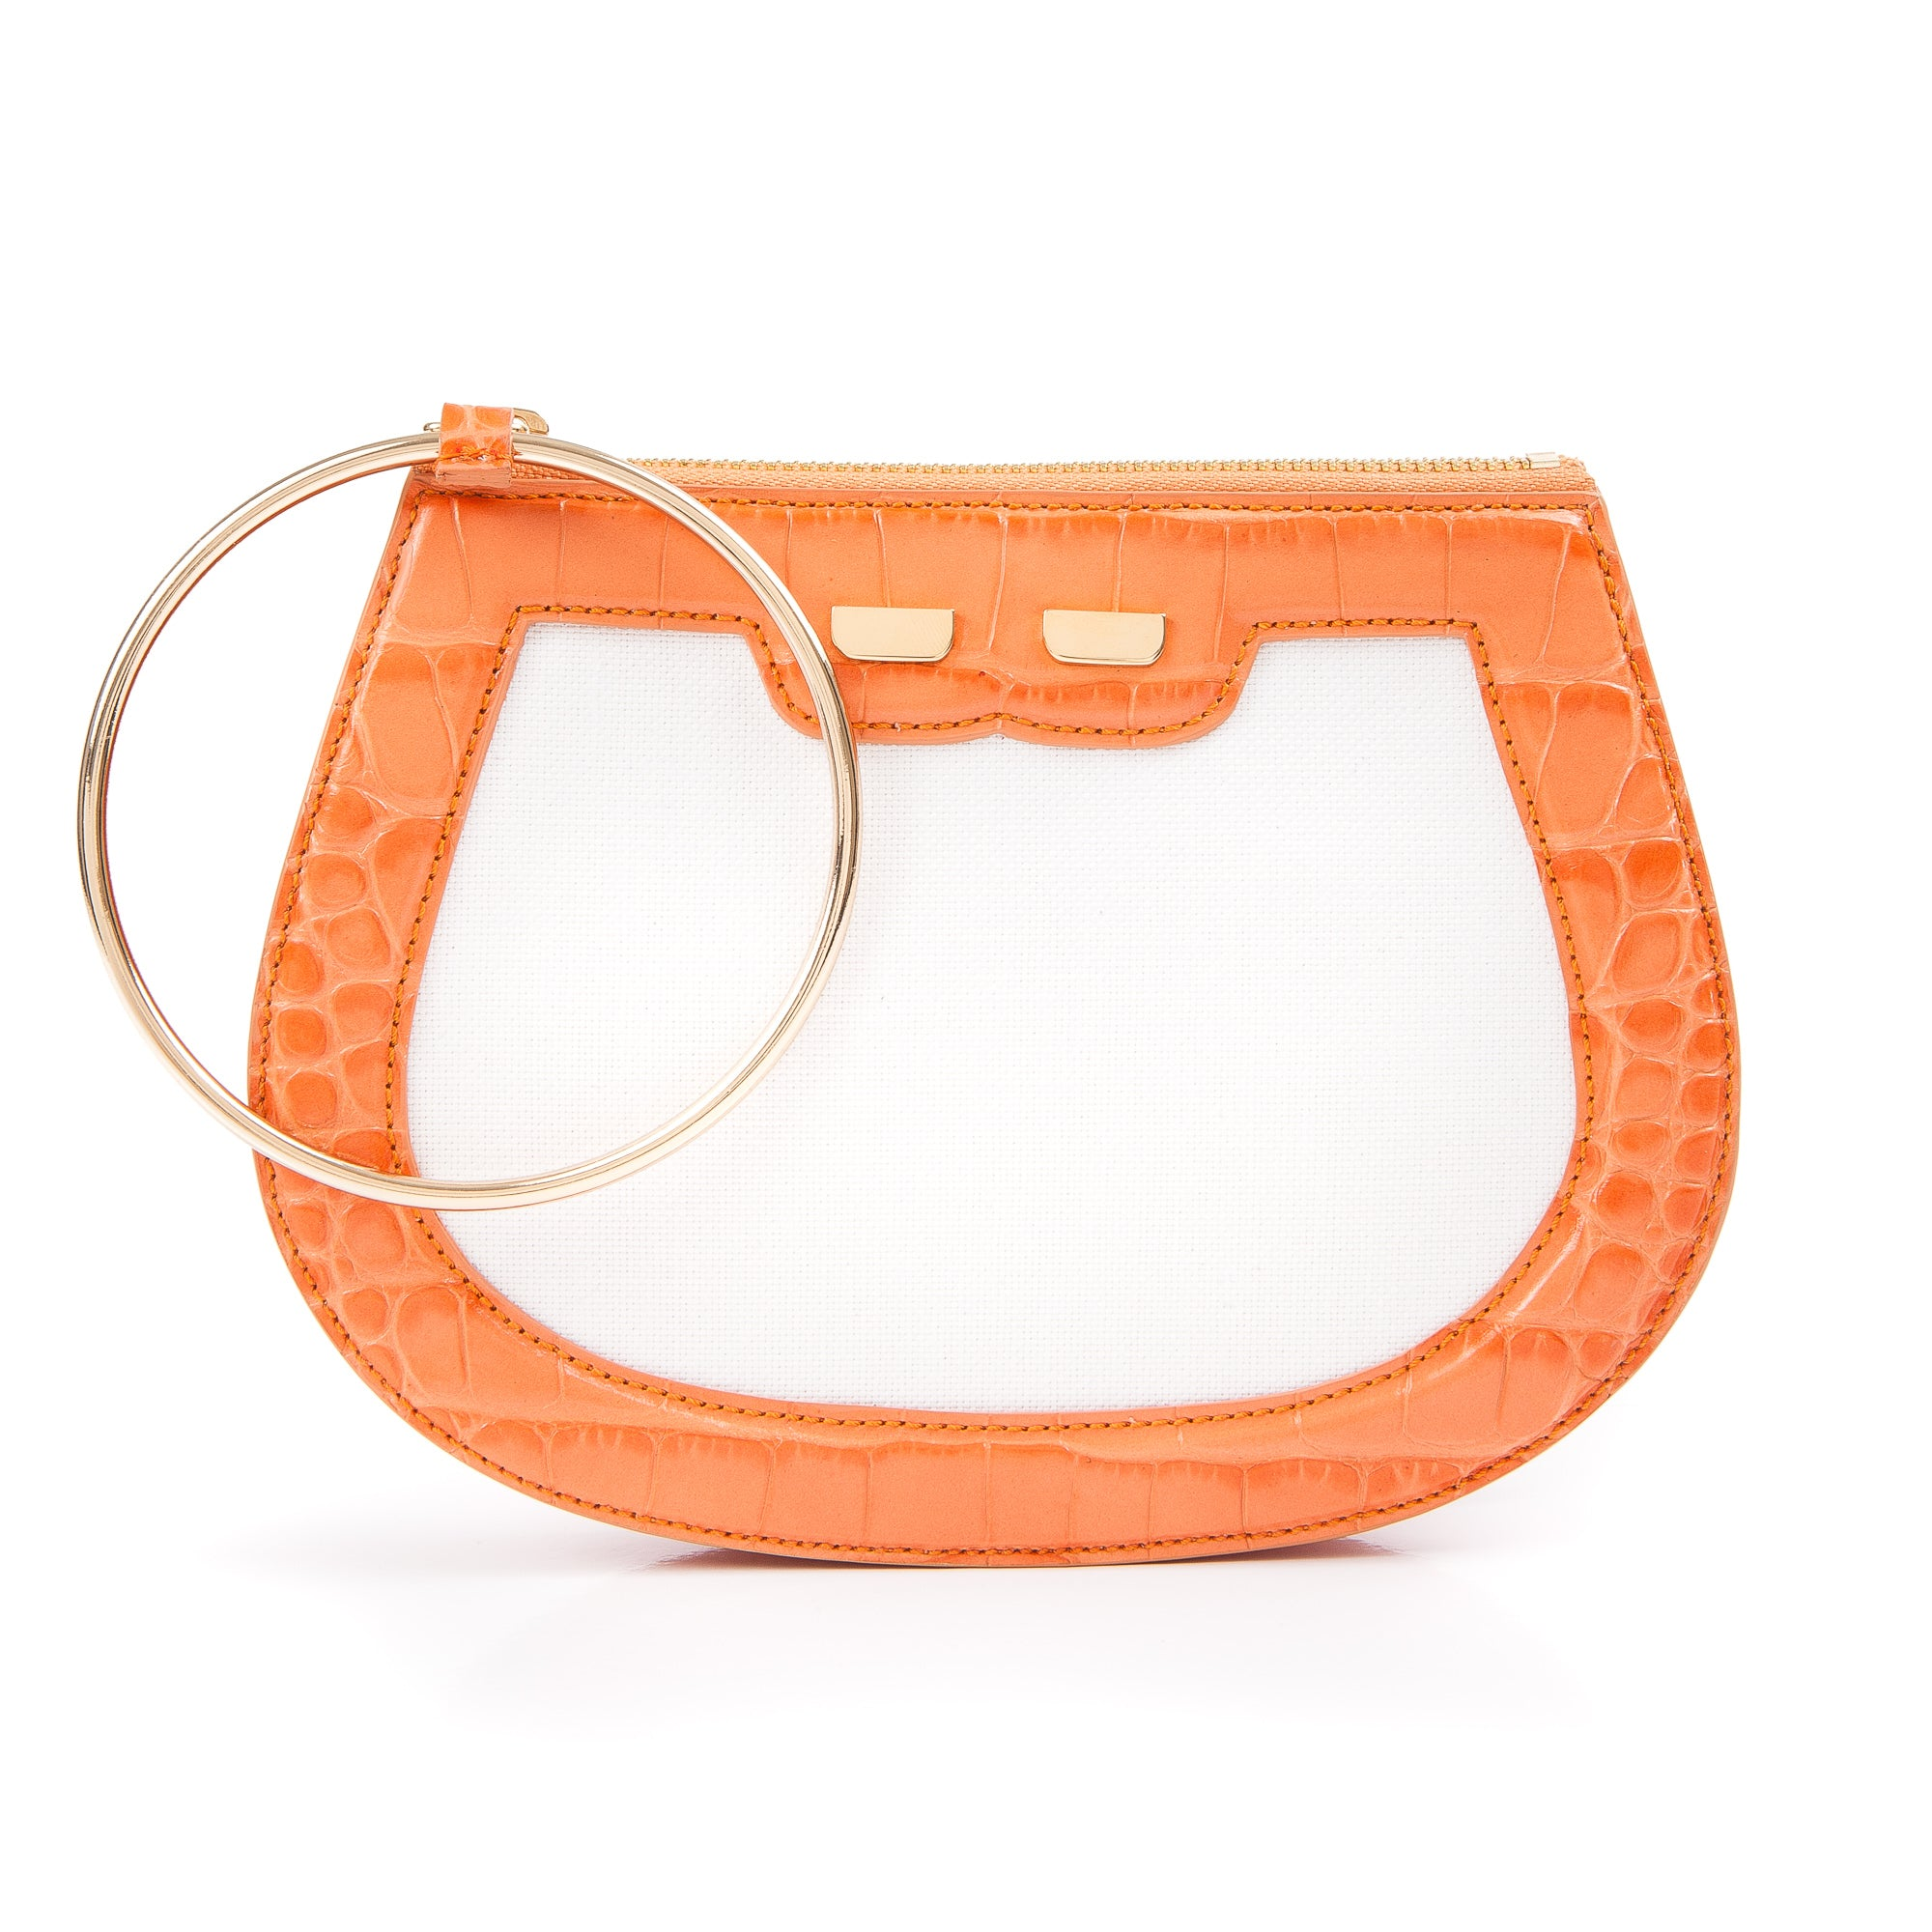 Ellie Bangle in Canvas & Orange Gator